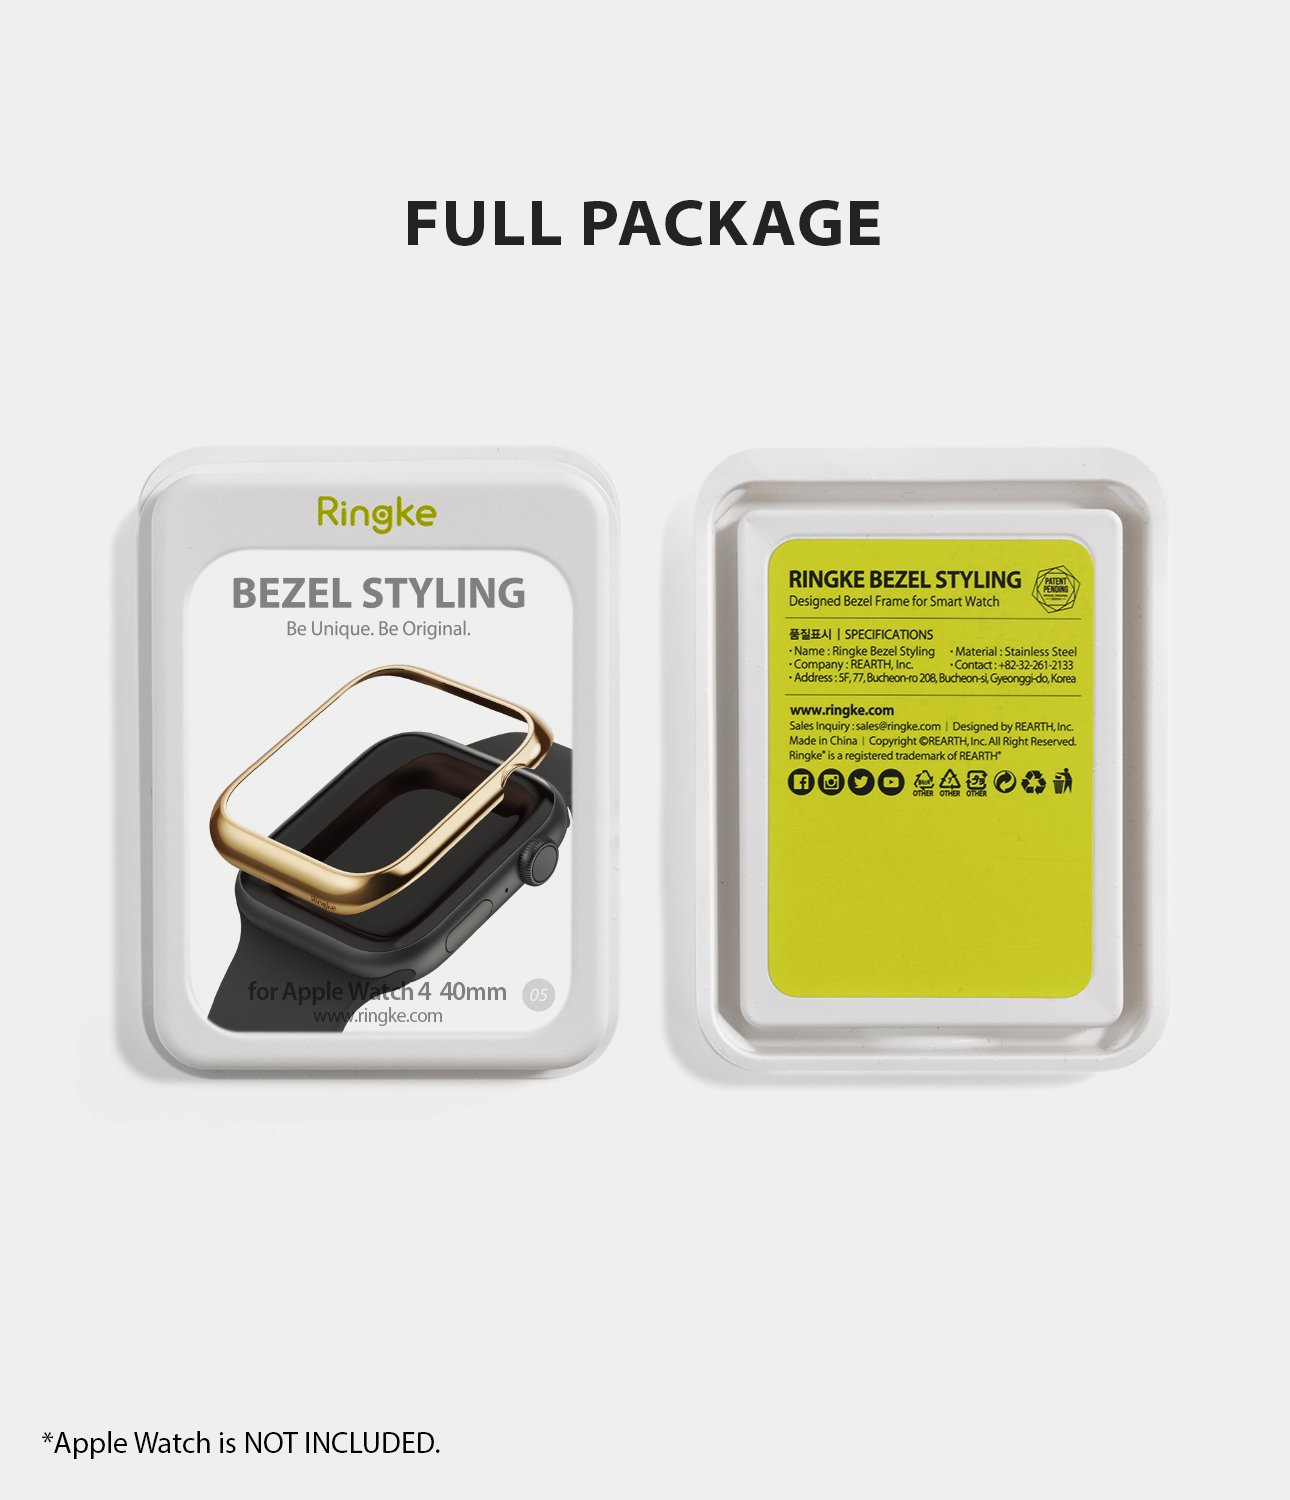 ringke bezel styling 40-05 glossy gold stainless steel on apple watch series 6 / 5 / 4 / SE 40mm full package